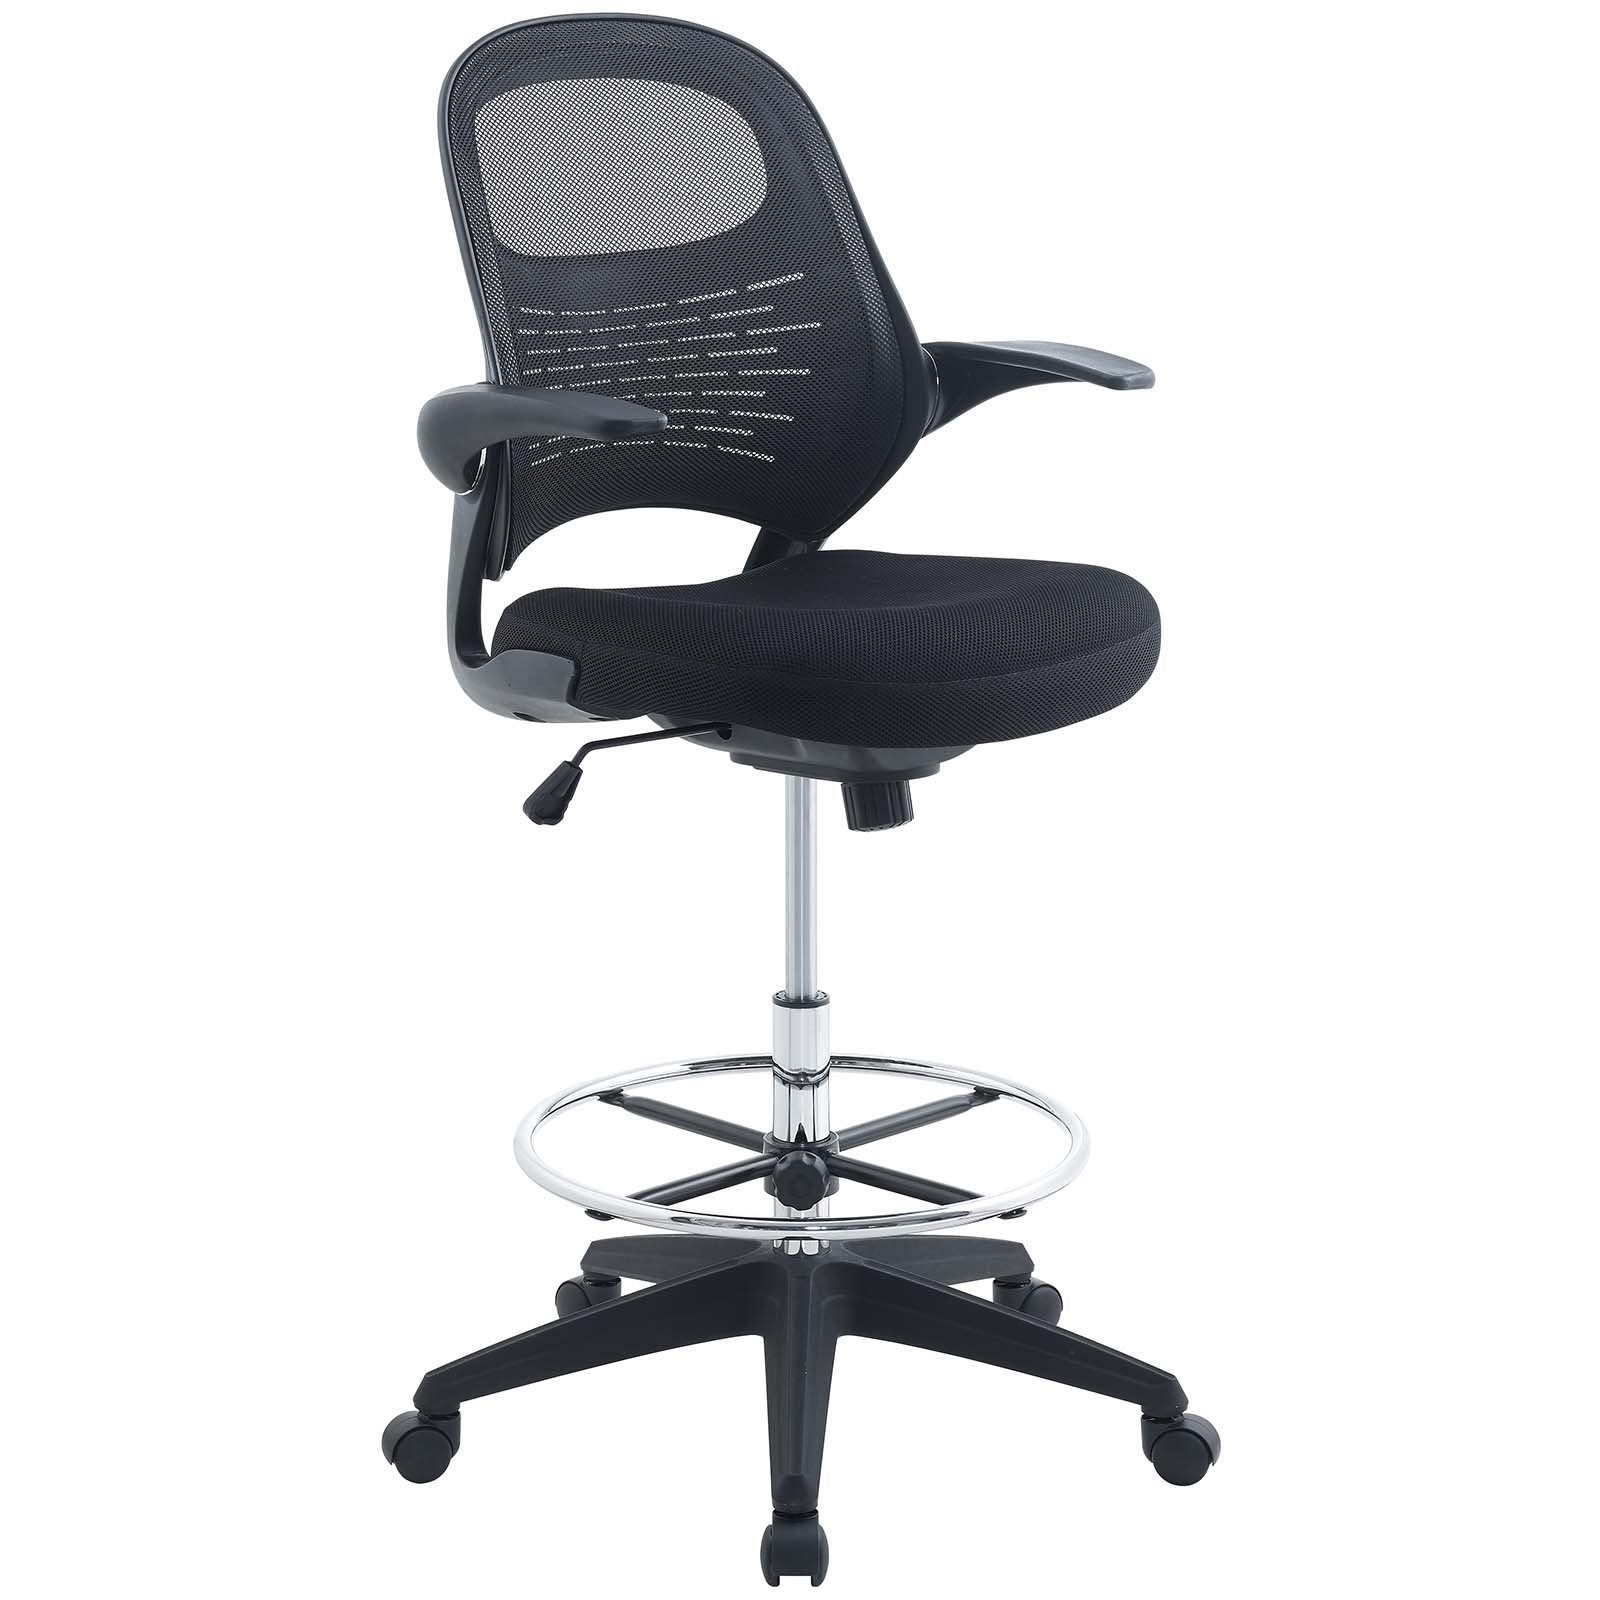 Modway Advance Drafting Stool - Reception Desk Chair - Drafting Table Chair  - Flip-Up Arms in Black